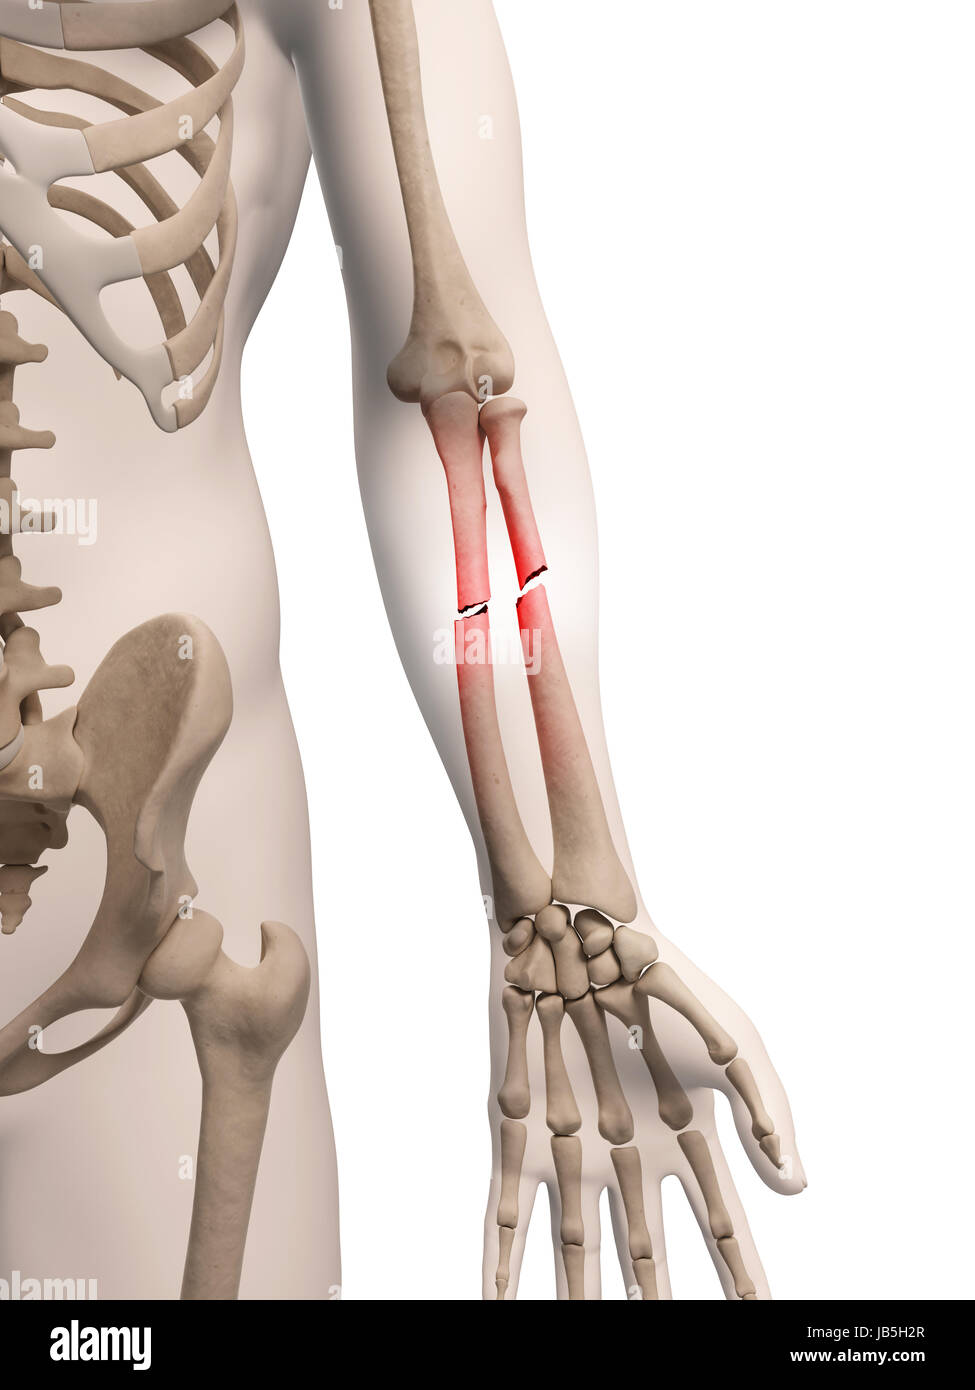 Lower Arm Bone Stockfotos & Lower Arm Bone Bilder - Alamy